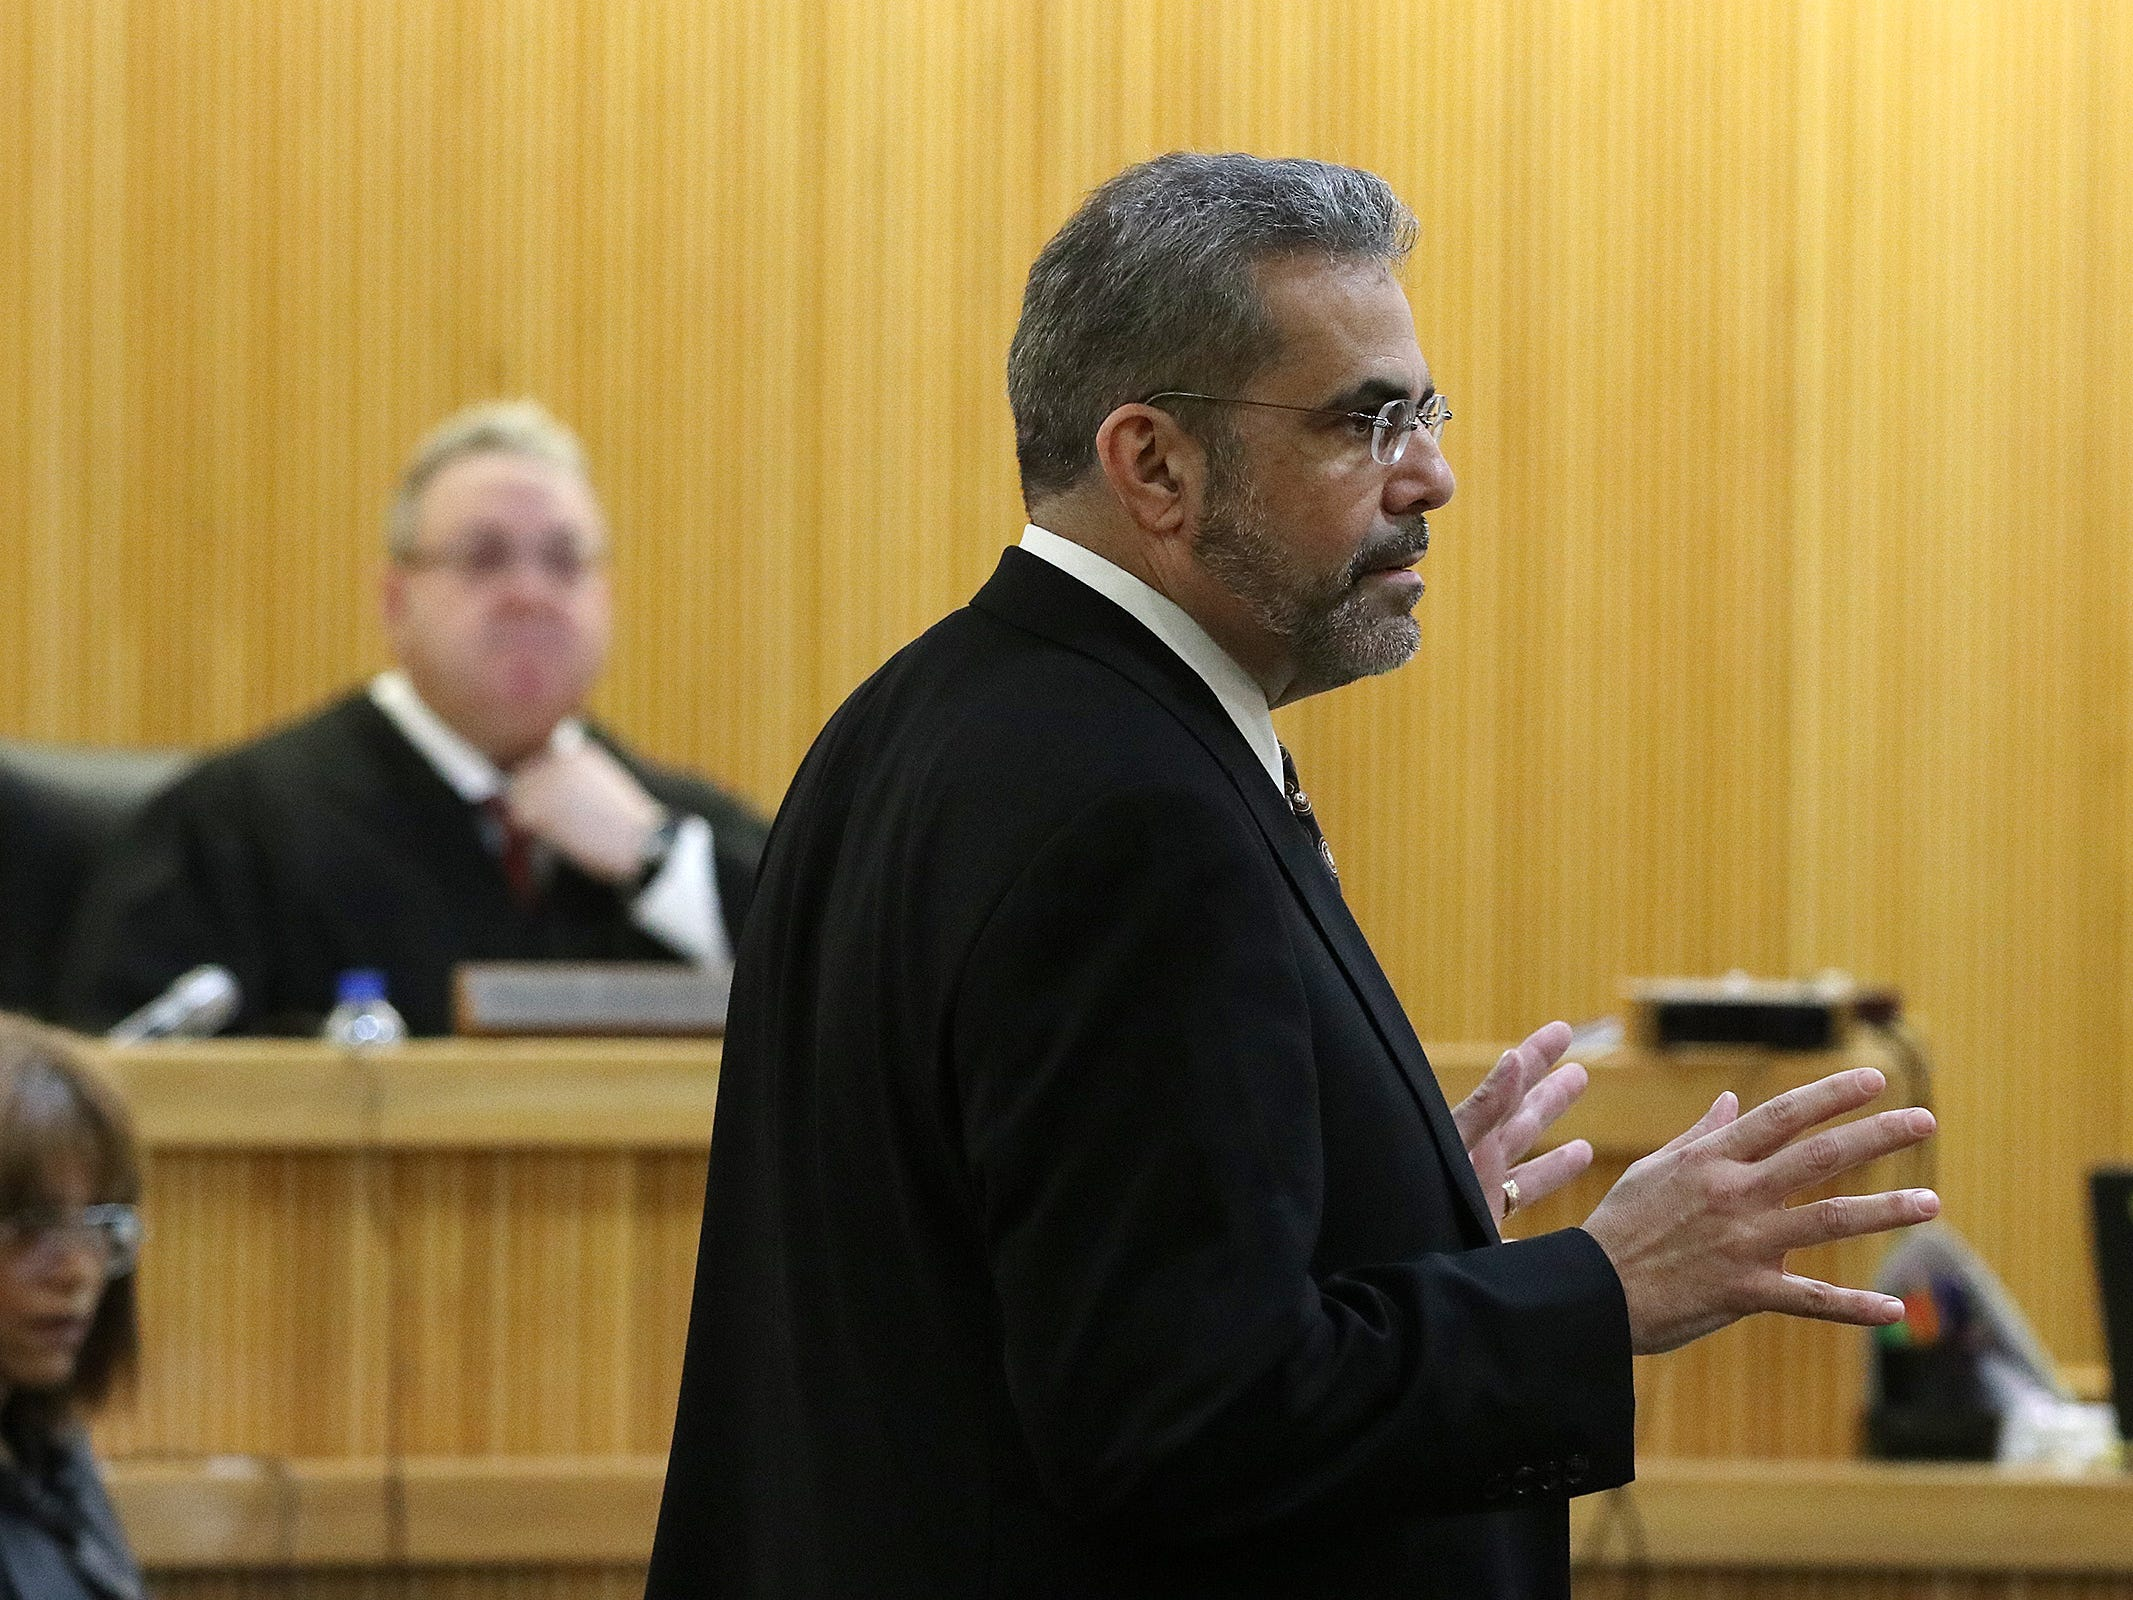 Carlos Diaz-Cobo, defense attorney, argues his motion for a mistrial during the trial of Liam McAtasney, who is charged with the murder of former high school classmate, Sarah Stern, before Superior Court Judge Richard W. English at the Monmouth County Courthouse in Freehold, NJ Thursday, February 14, 2019. The judge was considering a motion from the defense for a mistrial after it was discovered that two jurors, who were later dismissed, were communicating on Facebook Messenger.